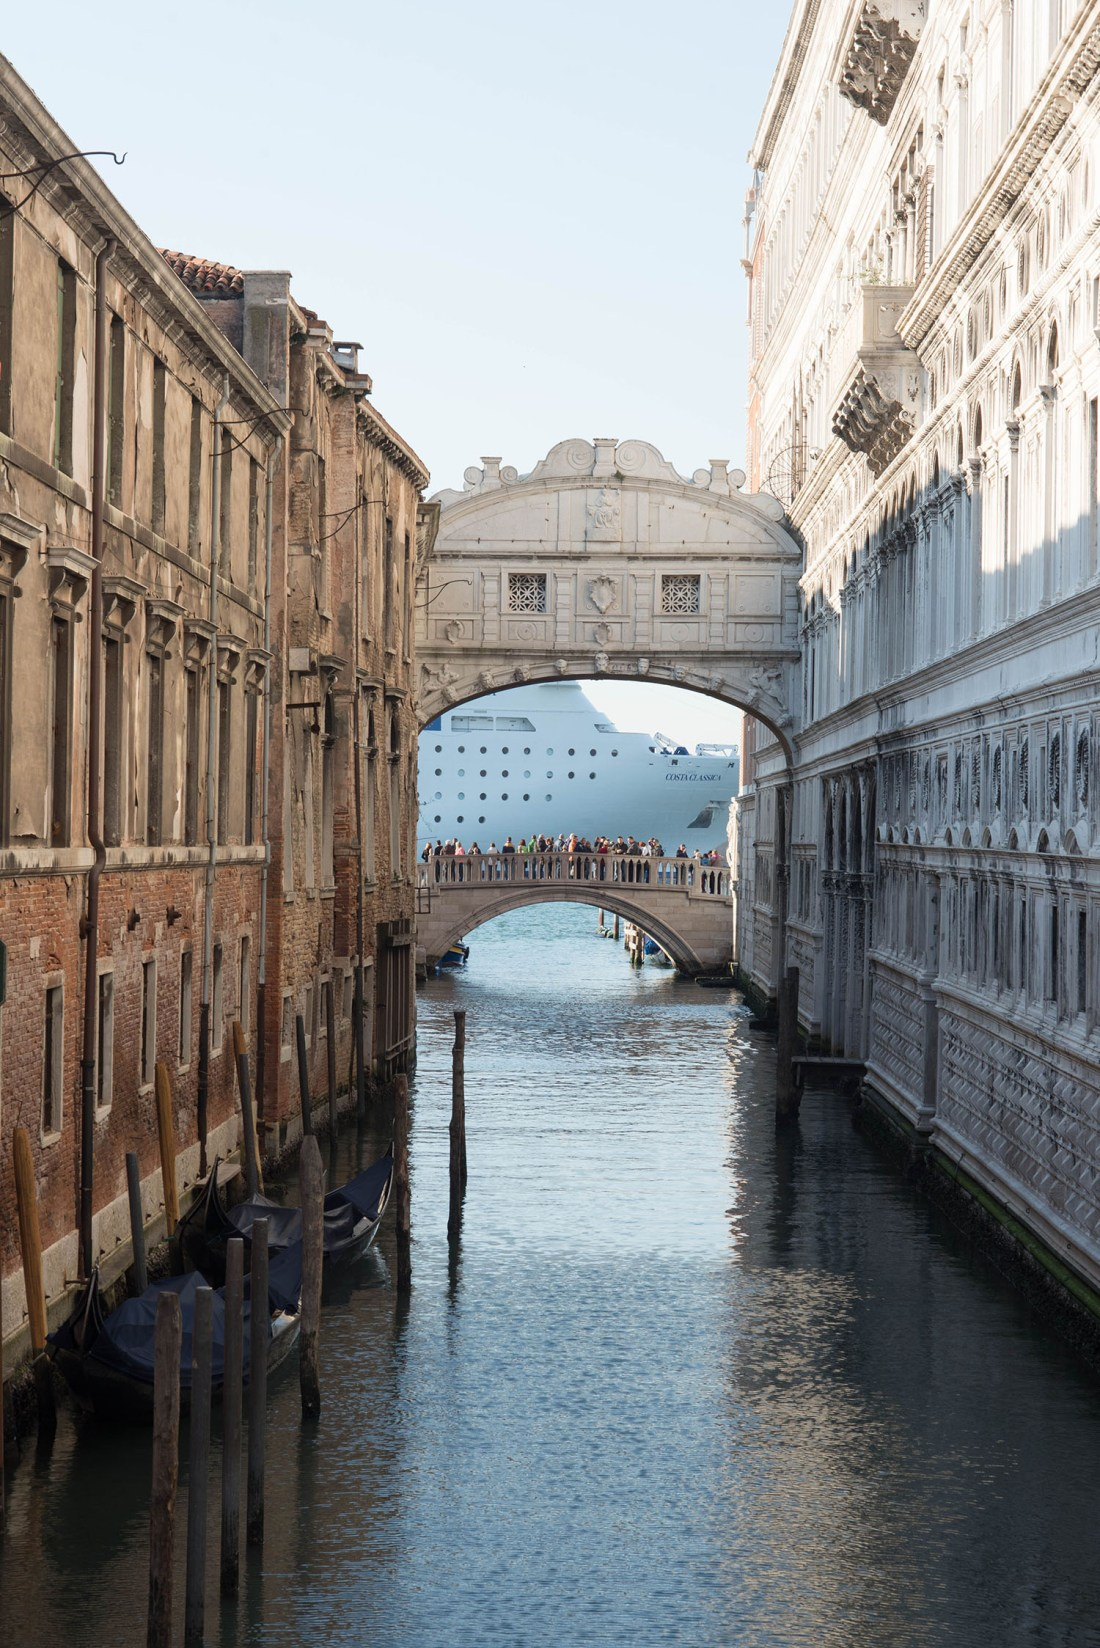 Bridges over a Venetian canal behind St. Mark's Basilica in Italy, as captured by travel blogger Cee Fardoe of Coco & Vera